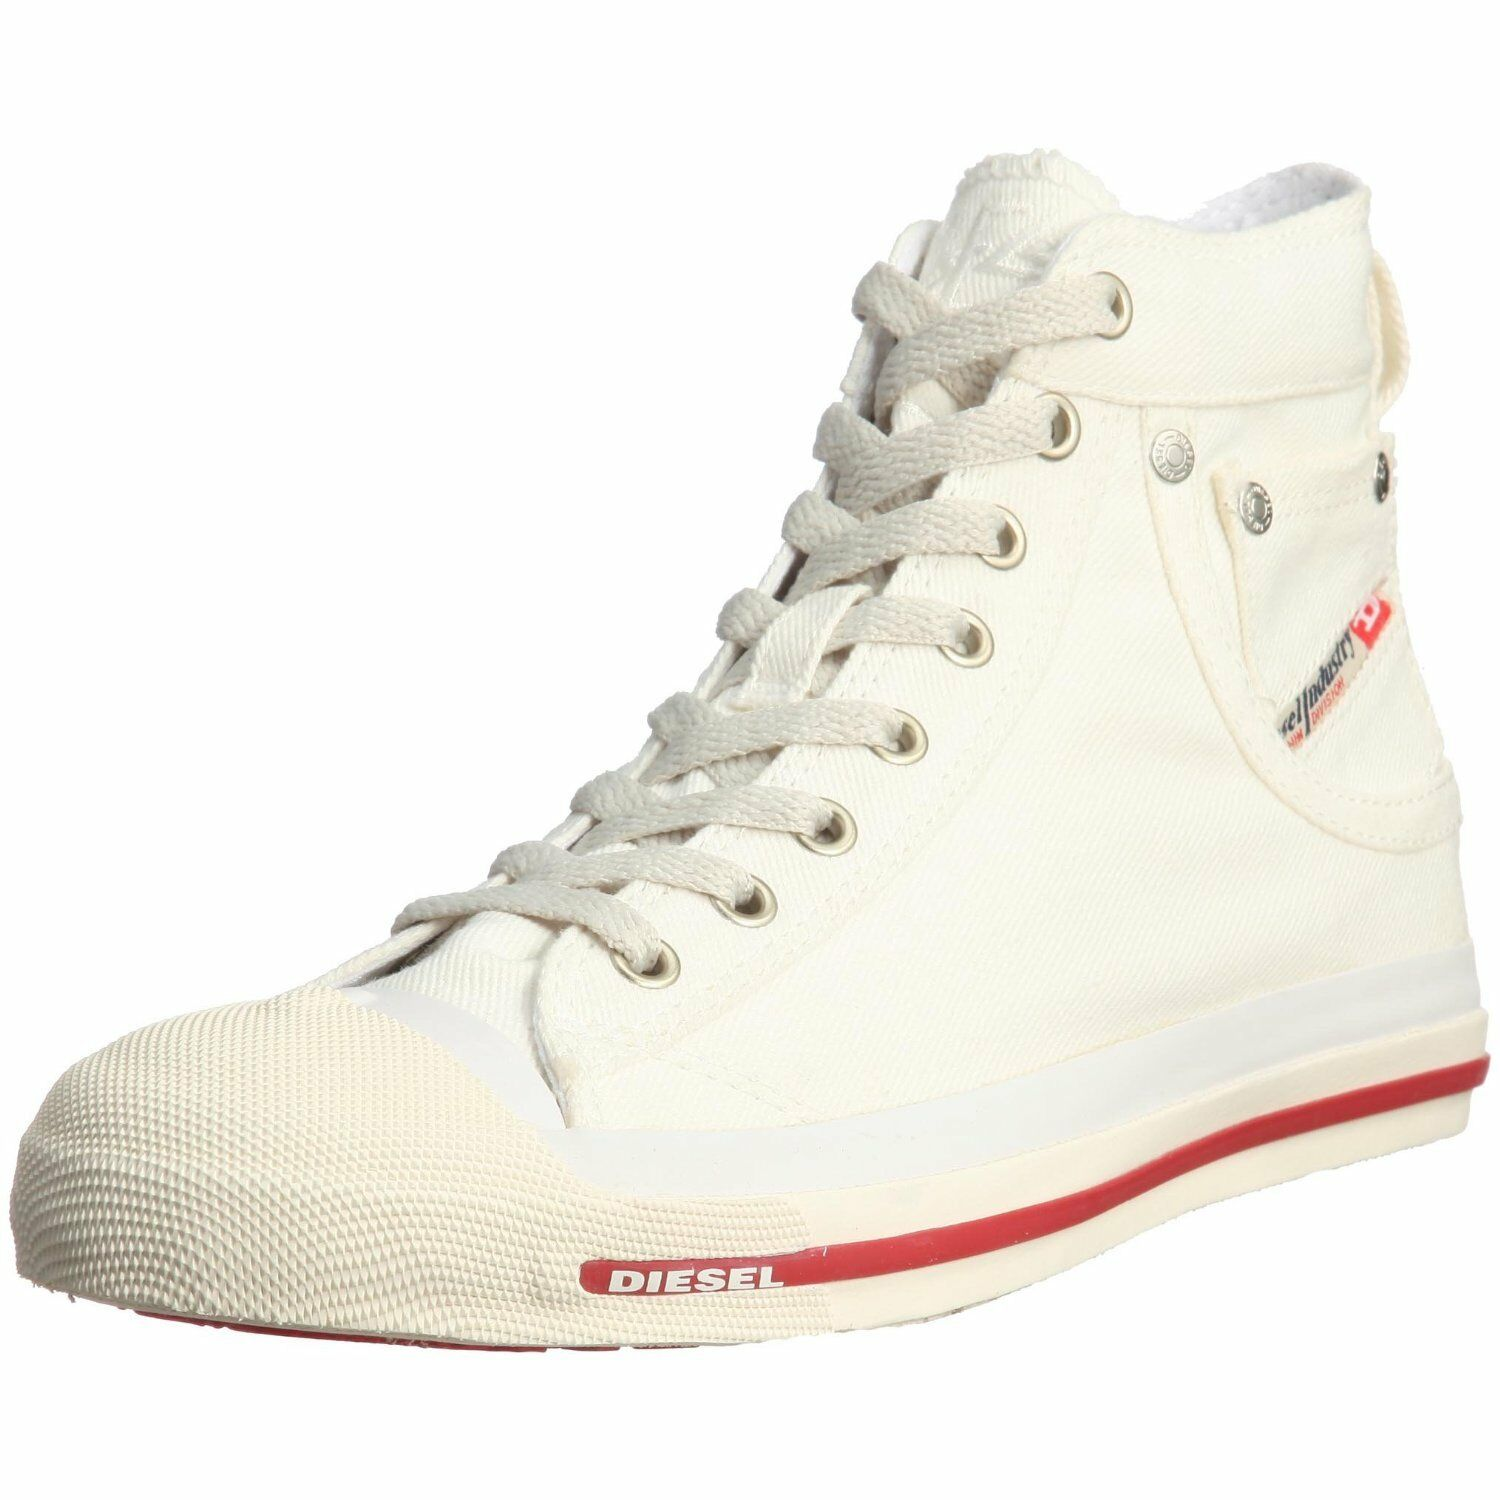 Diesel Exposure Hi Off White Red Womens Canvas New Trainers Shoes Boots